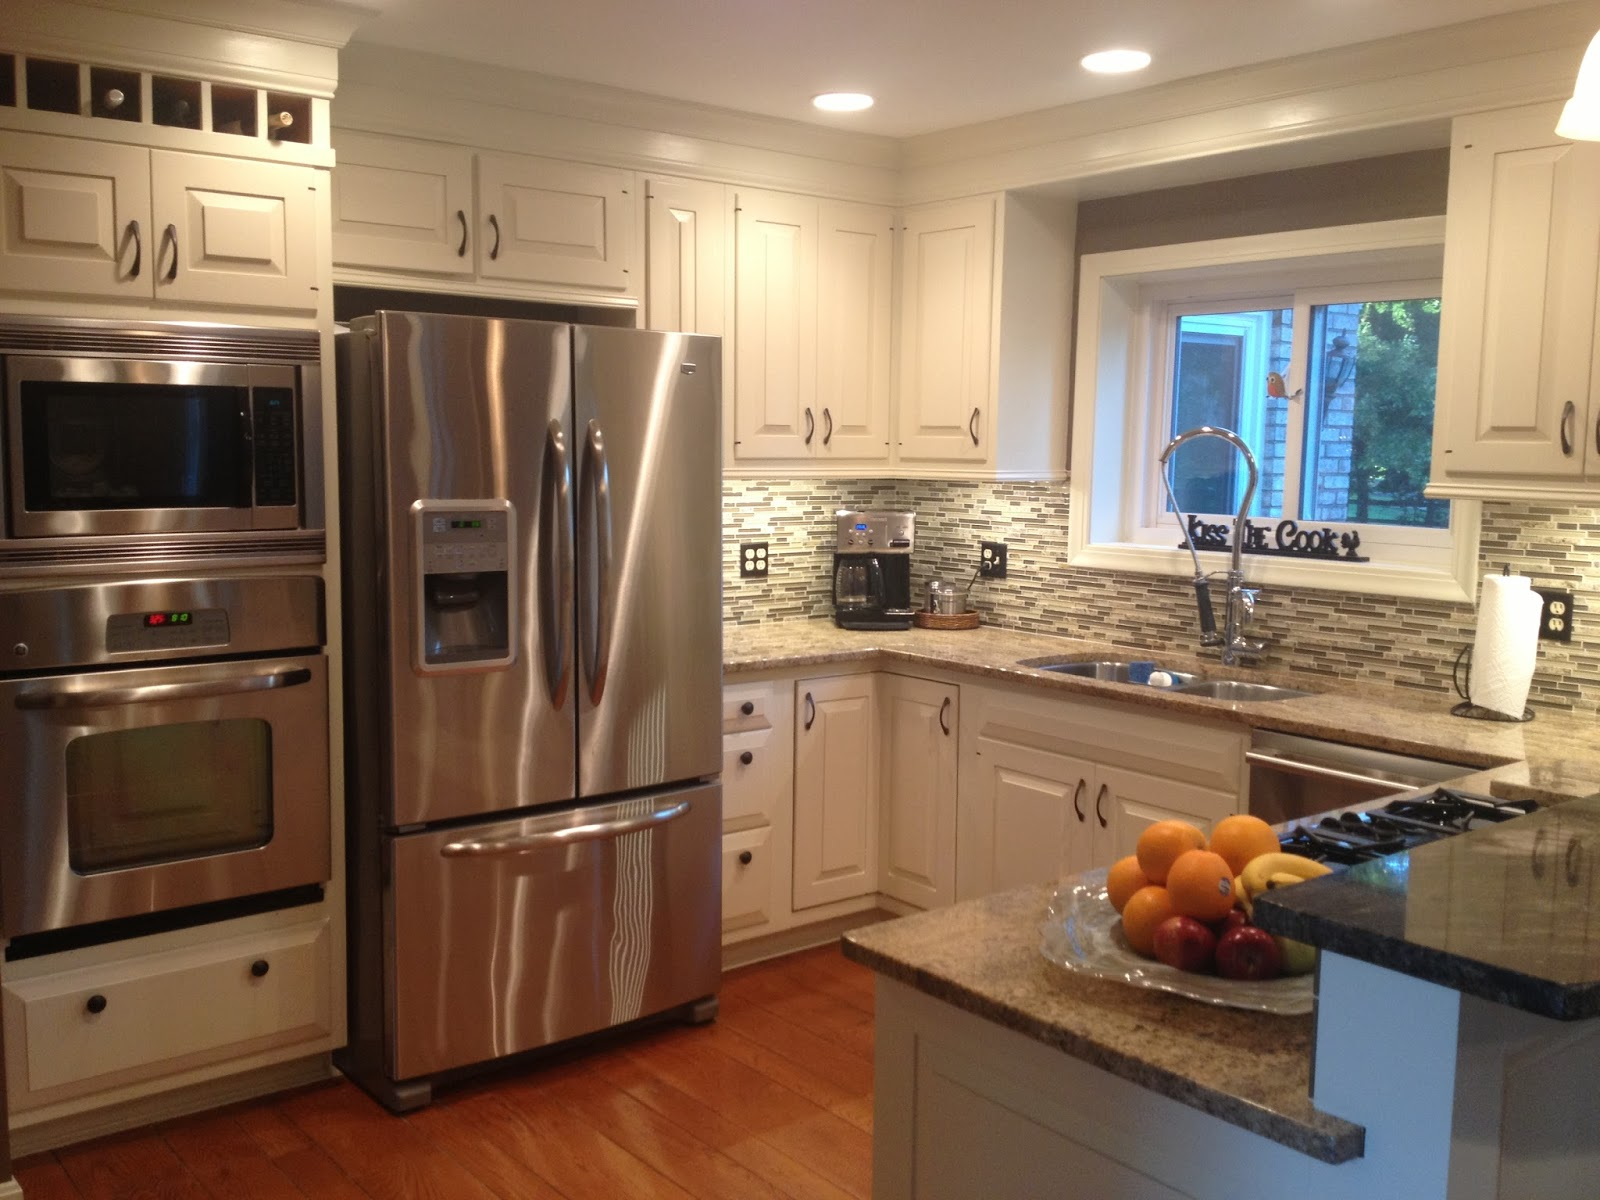 Four seasons style the new kitchen remodel on a budget for Kitchen improvement ideas